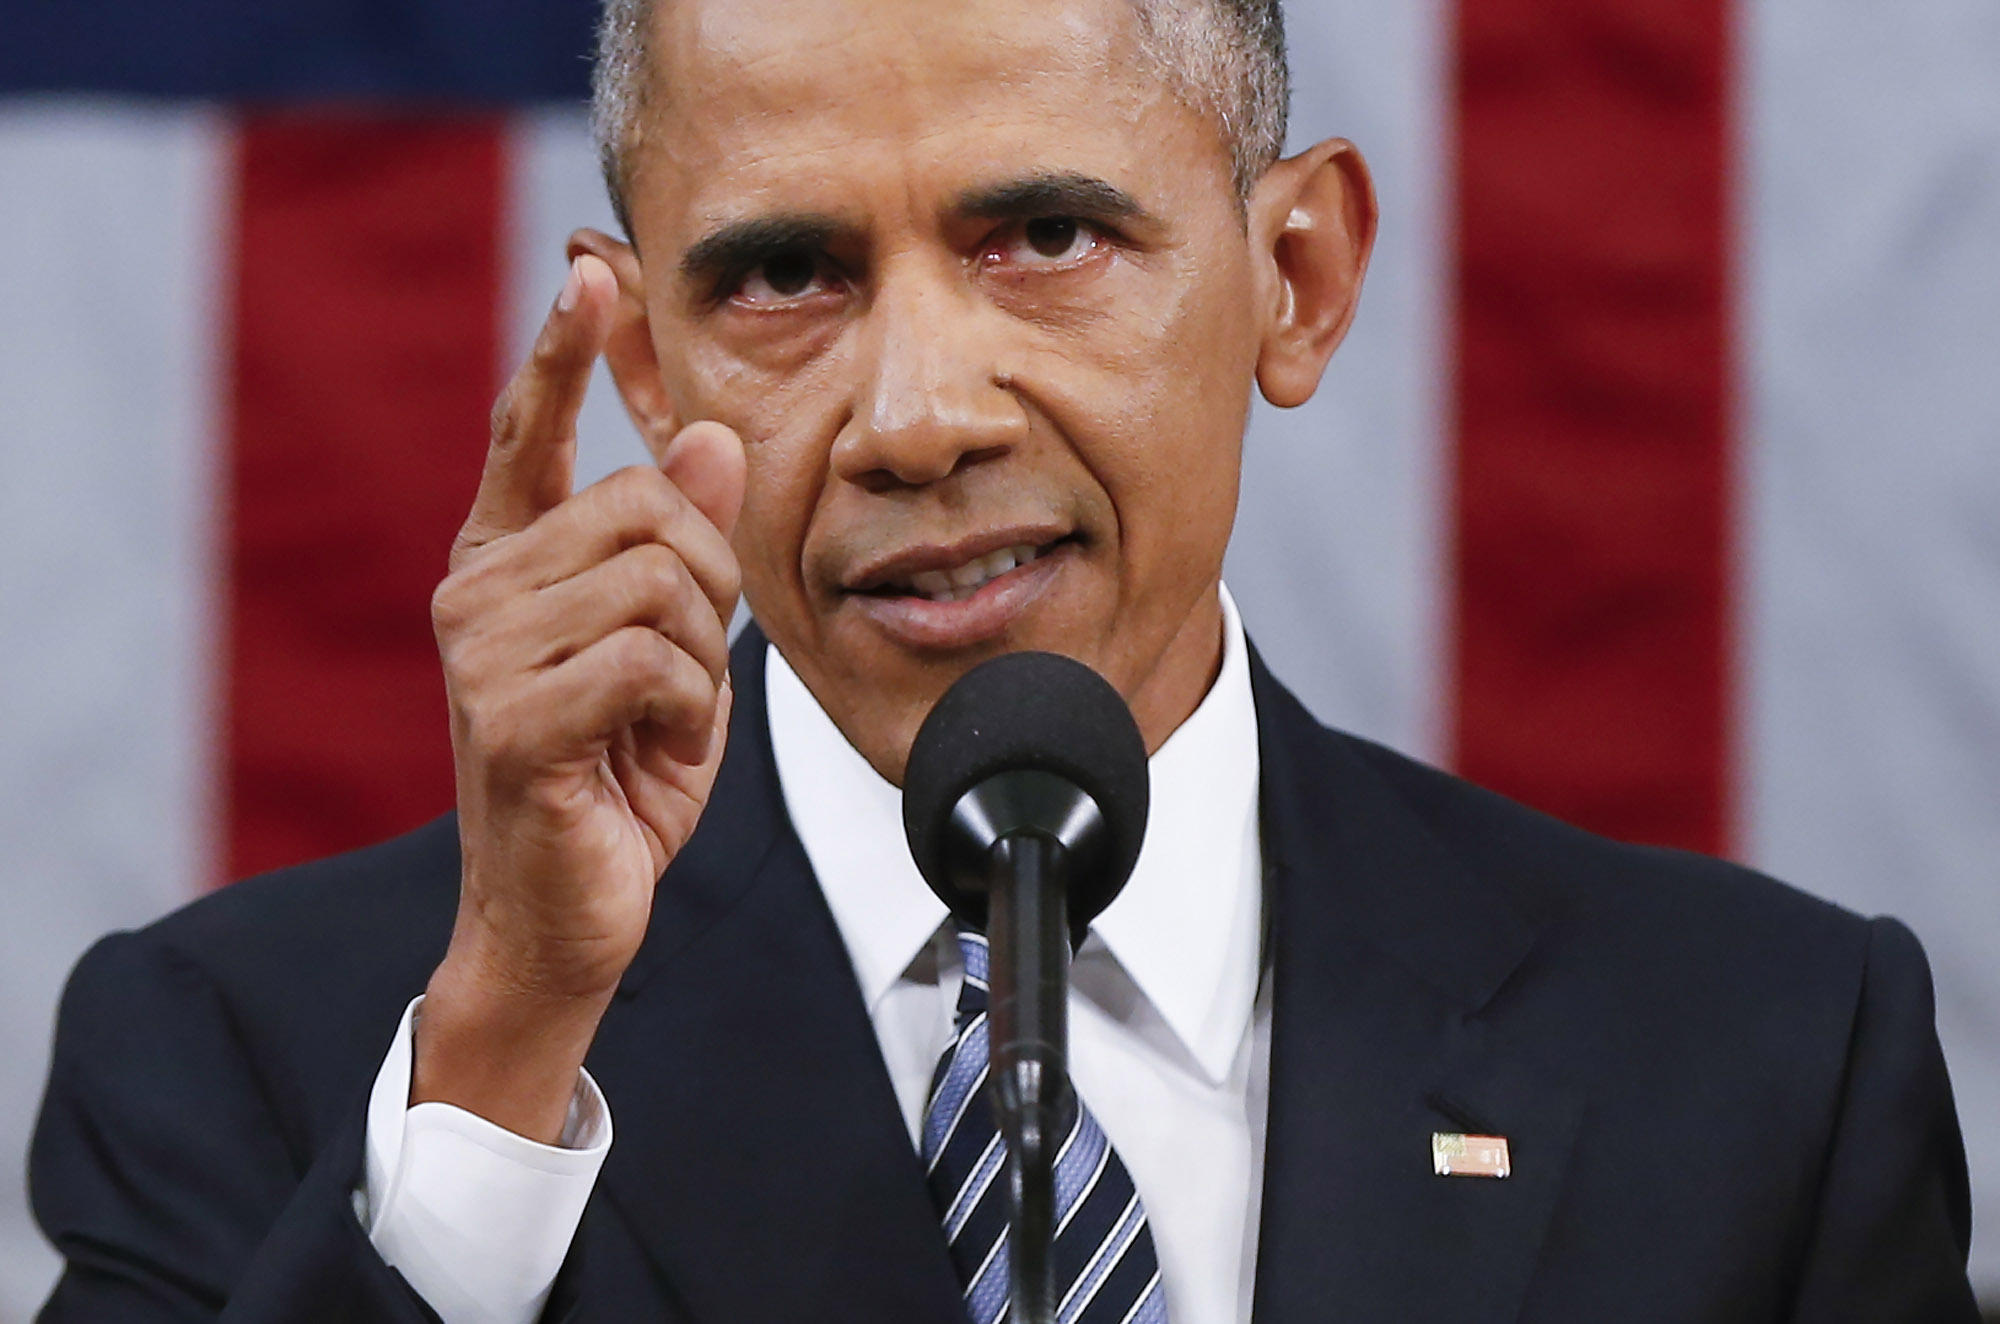 President Barack Obama delivers his State of the Union address before a joint session of Congress on Capitol Hill in Washington, D.C., on Jan. 12, 2016.